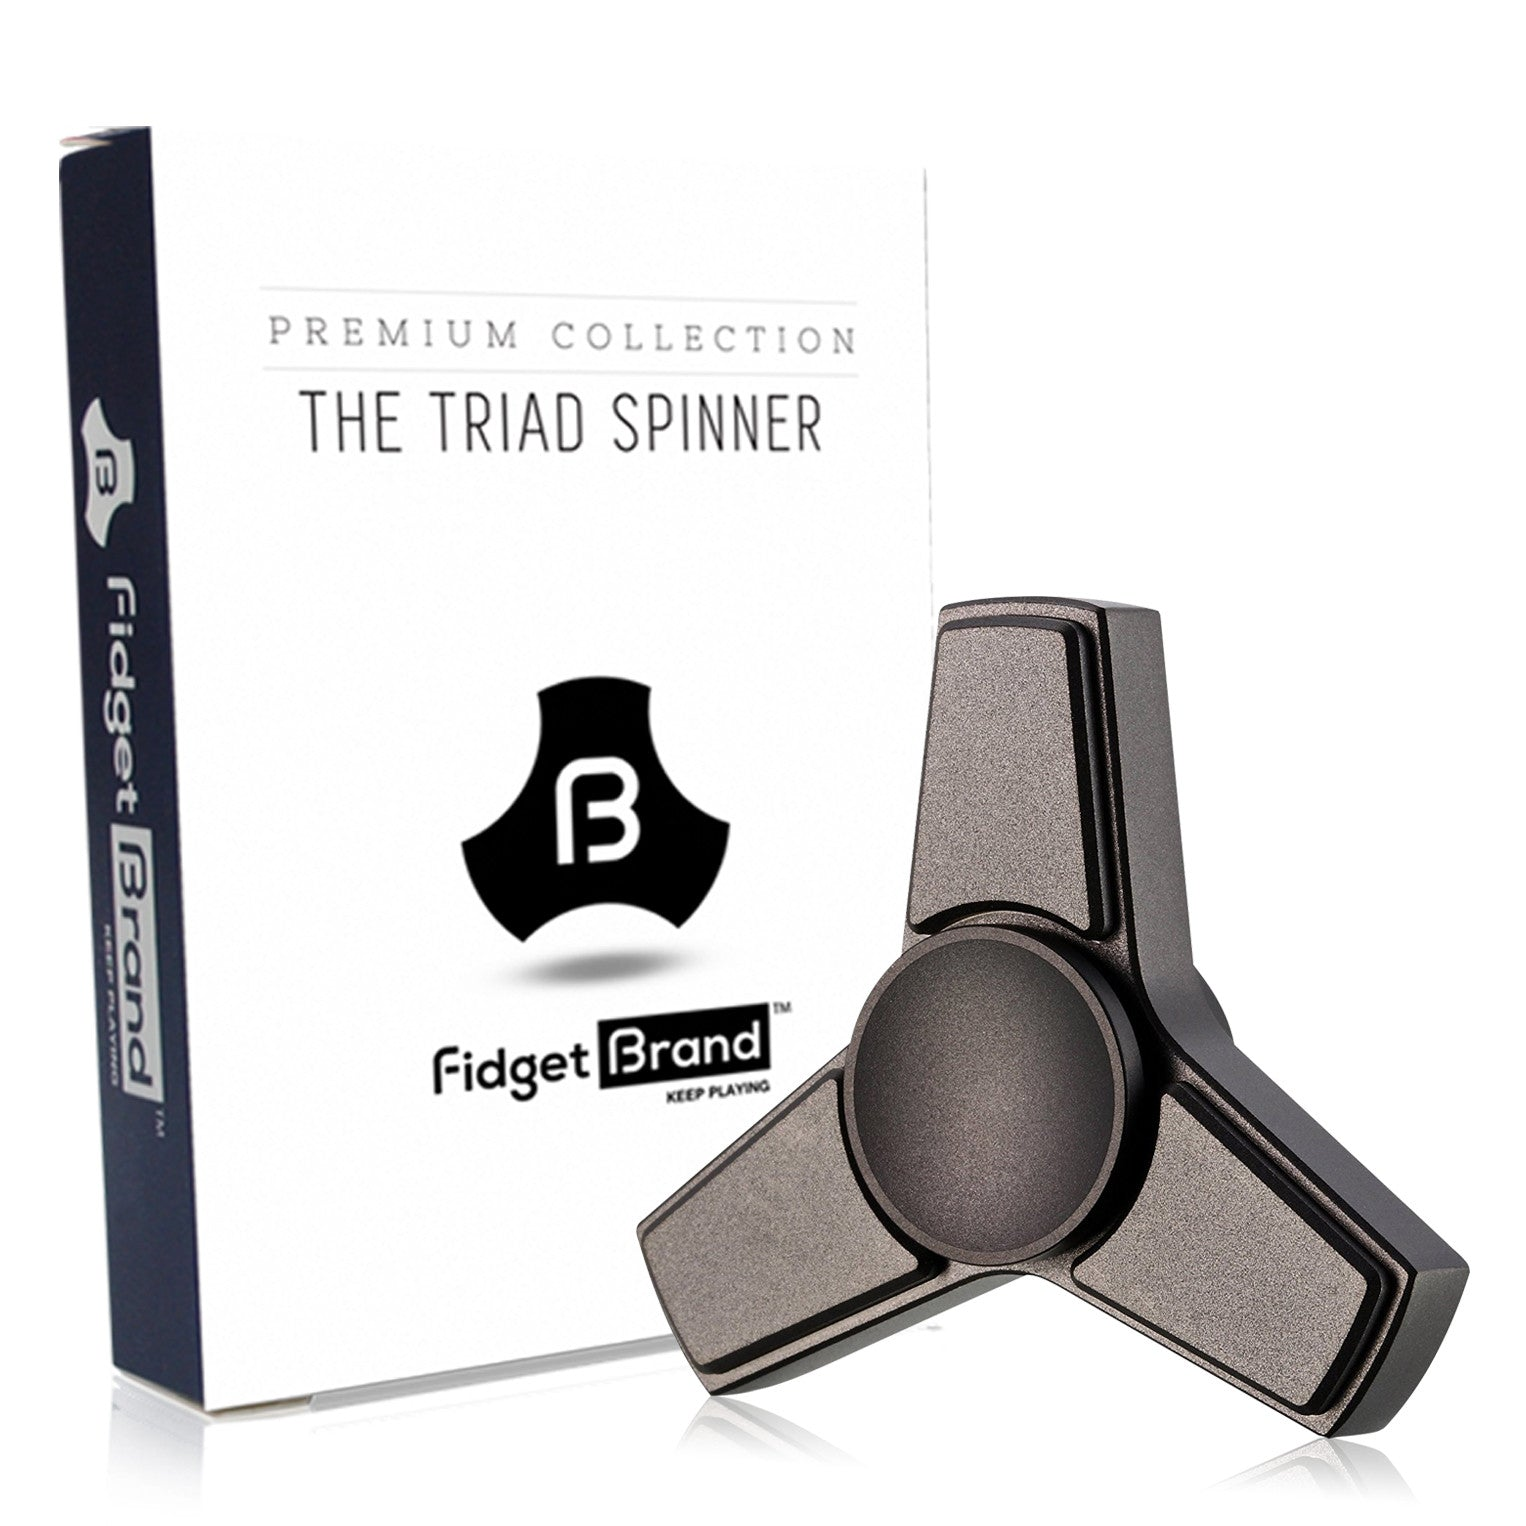 The Triad Fidget Spinner by Fidgetbrand, Black/Stainless Steel